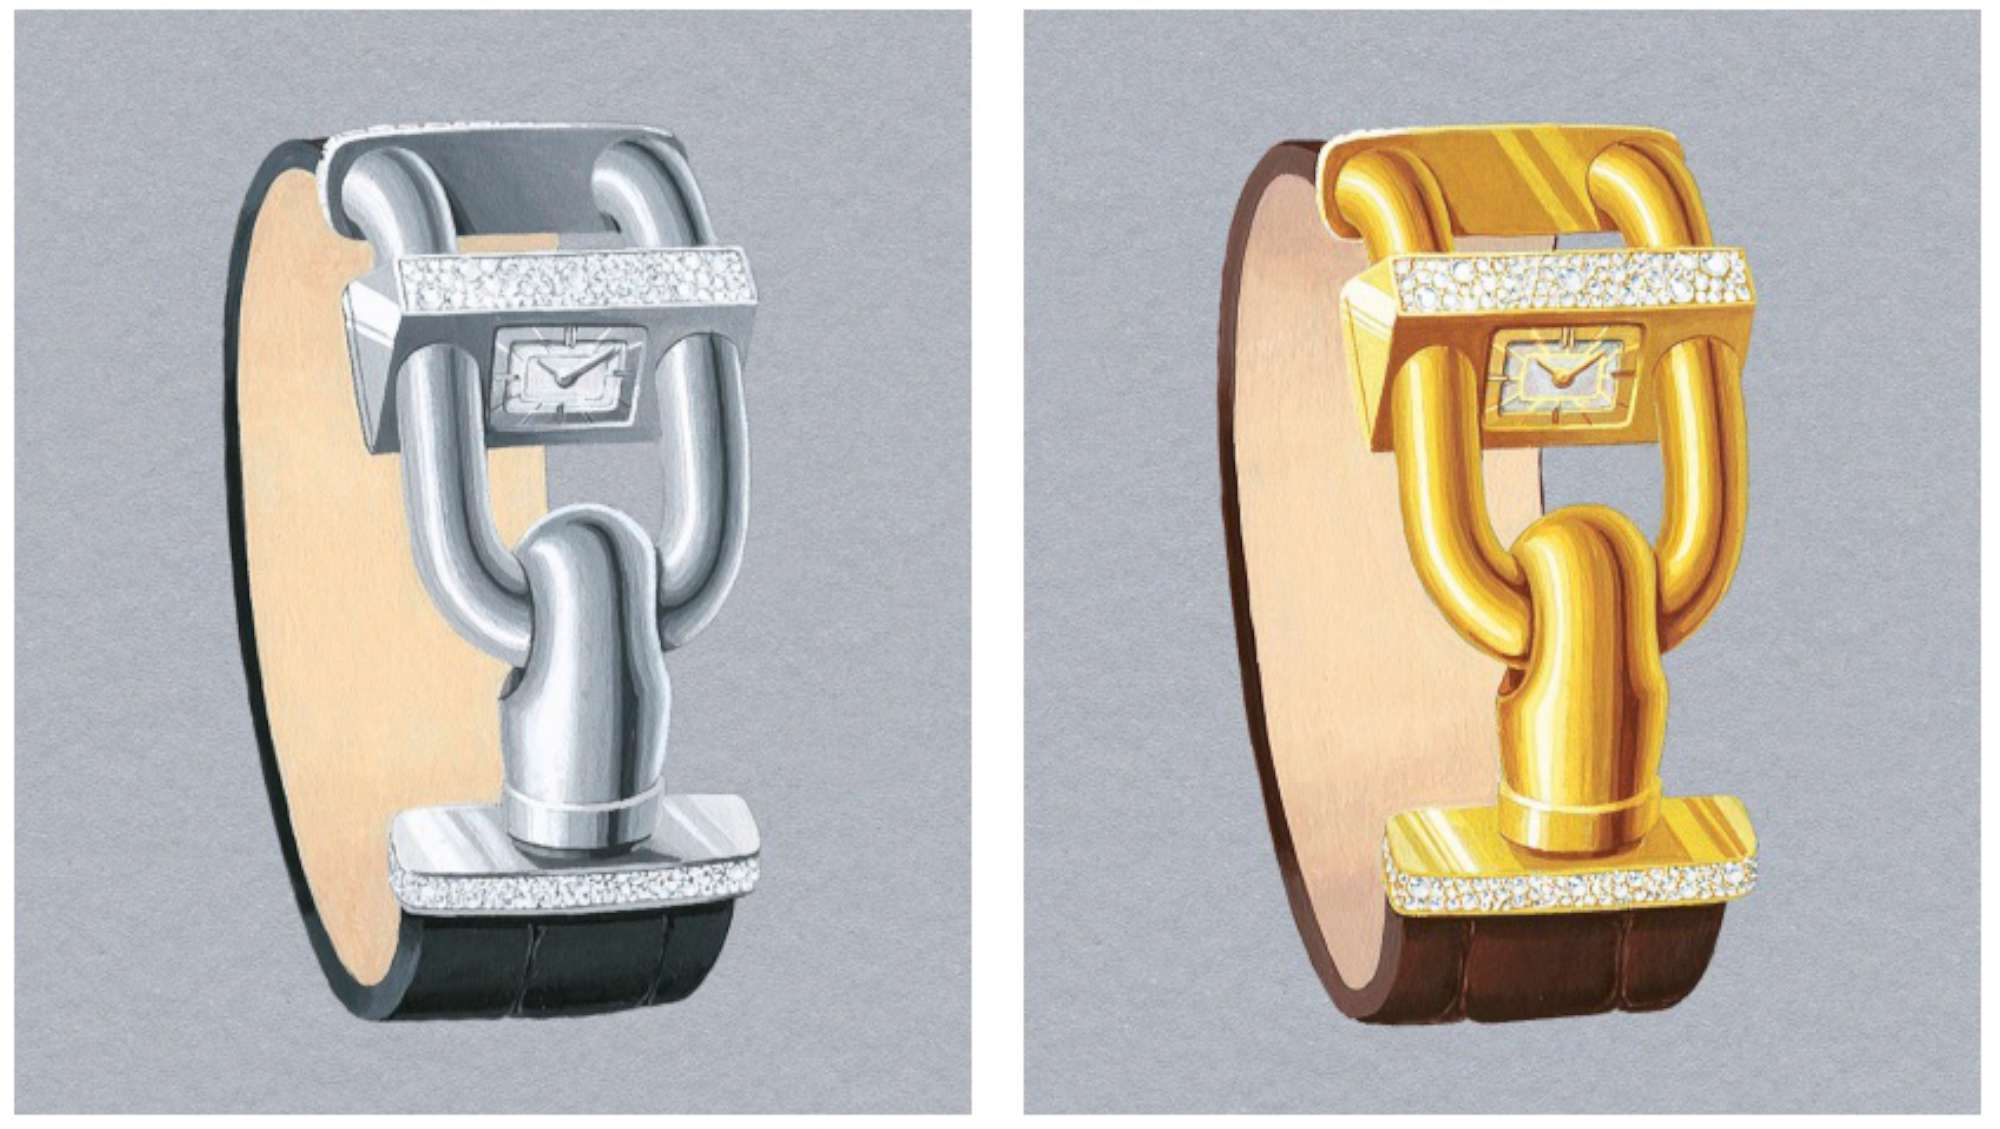 Cadenas Sertie, with snow-set diamonds on the top face of the watch, in white or yellow gold